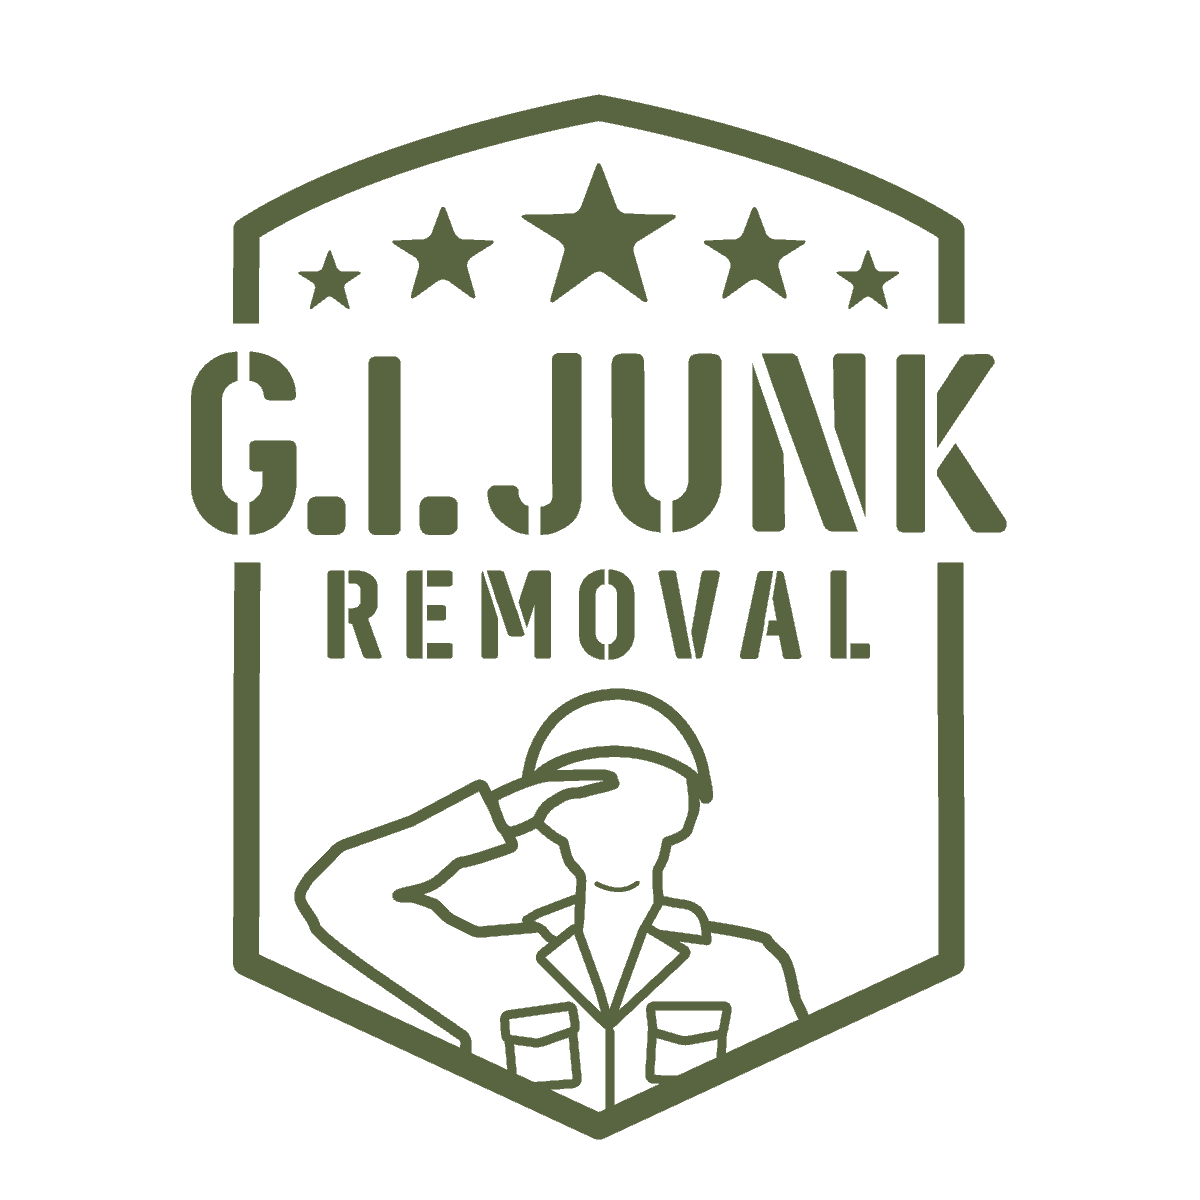 G.I. Junk Removal